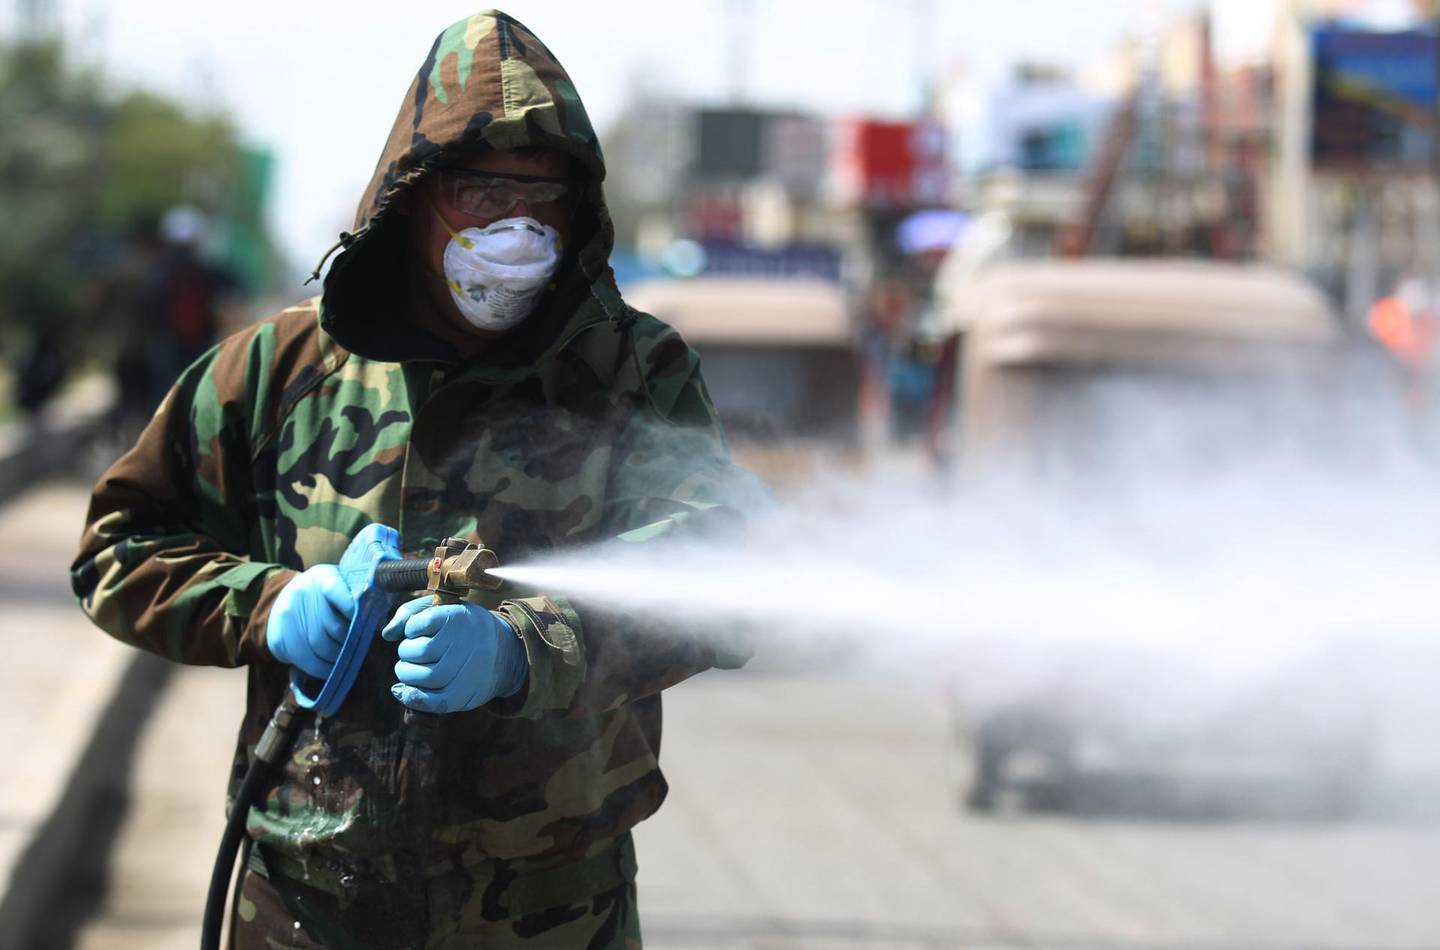 An Iraqi Civil Defence teams disinfects the streets of Sadr City in Baghdad on March 24, 2020 as a precaution against the coronavirus COVID-19 during the imposition of a curfew in Iraq. / AFP / AHMAD AL-RUBAYE